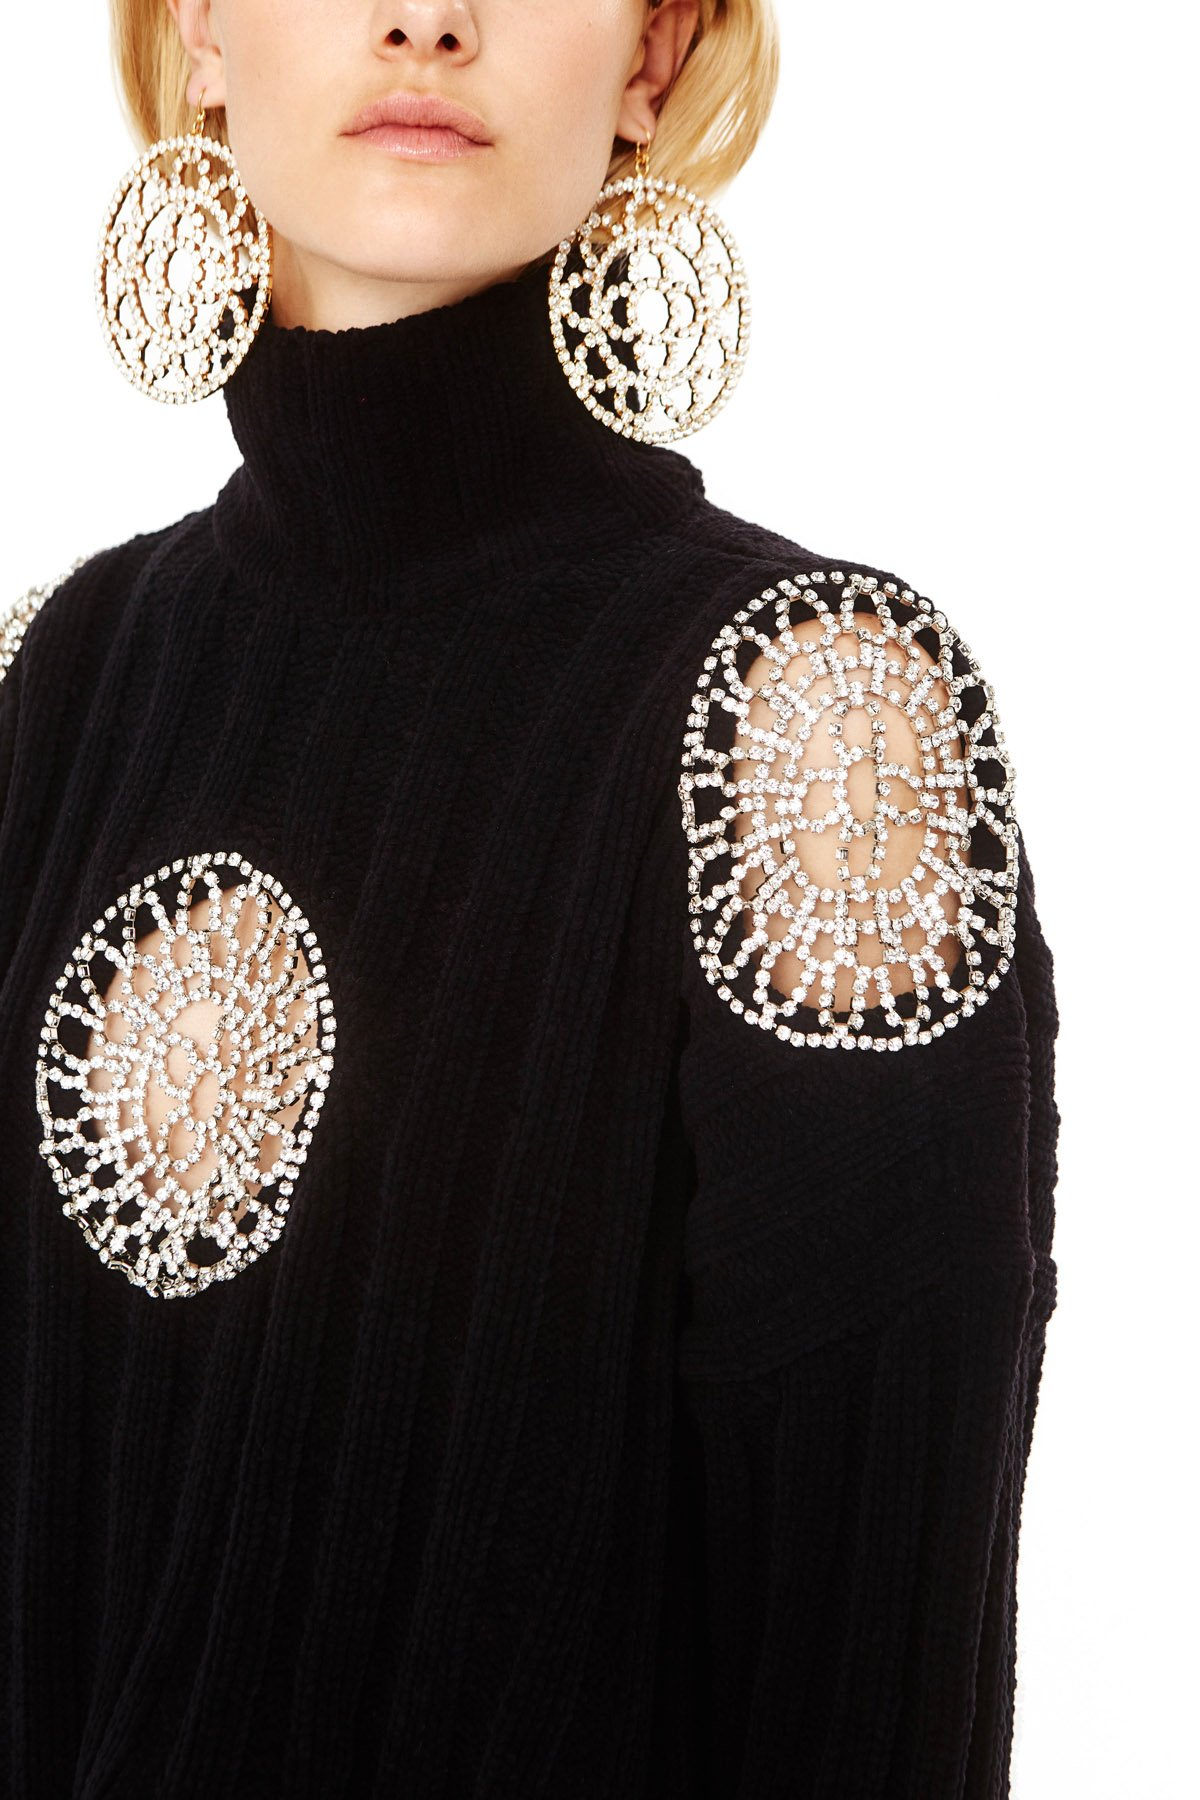 Knitted sweater in an oversized fit. Features clear crystal doily inserts on chest and shoulders. Available in Black.